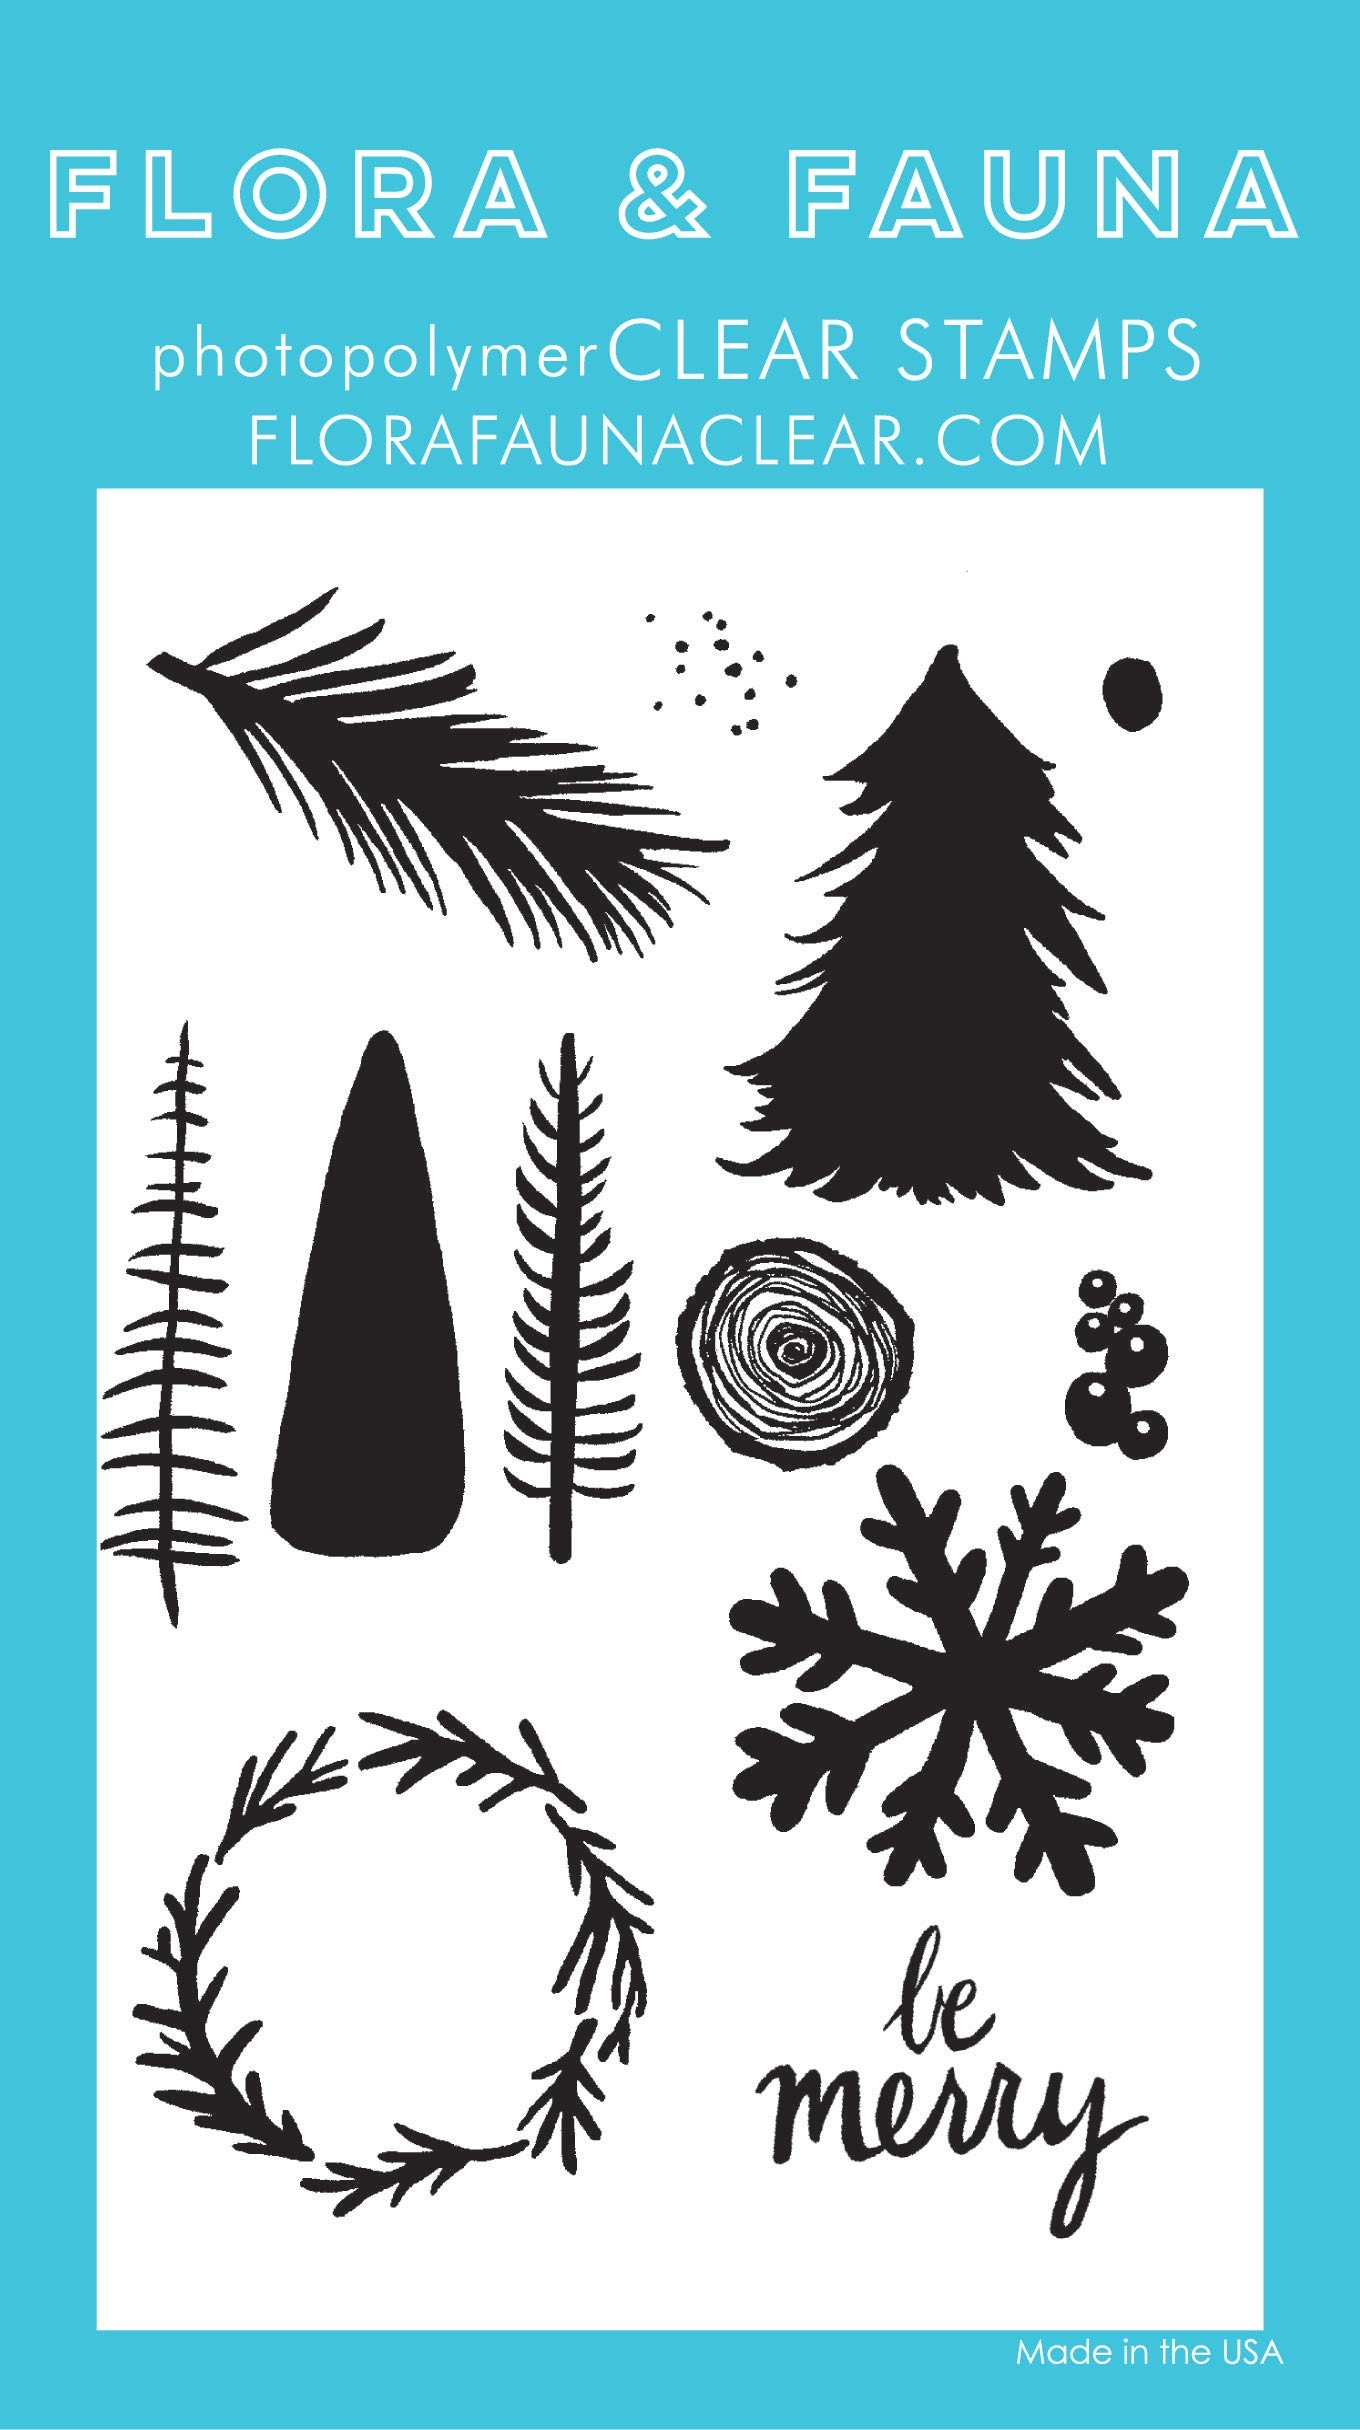 Flora & Fauna Holiday Watercolor Clear Stamp Set